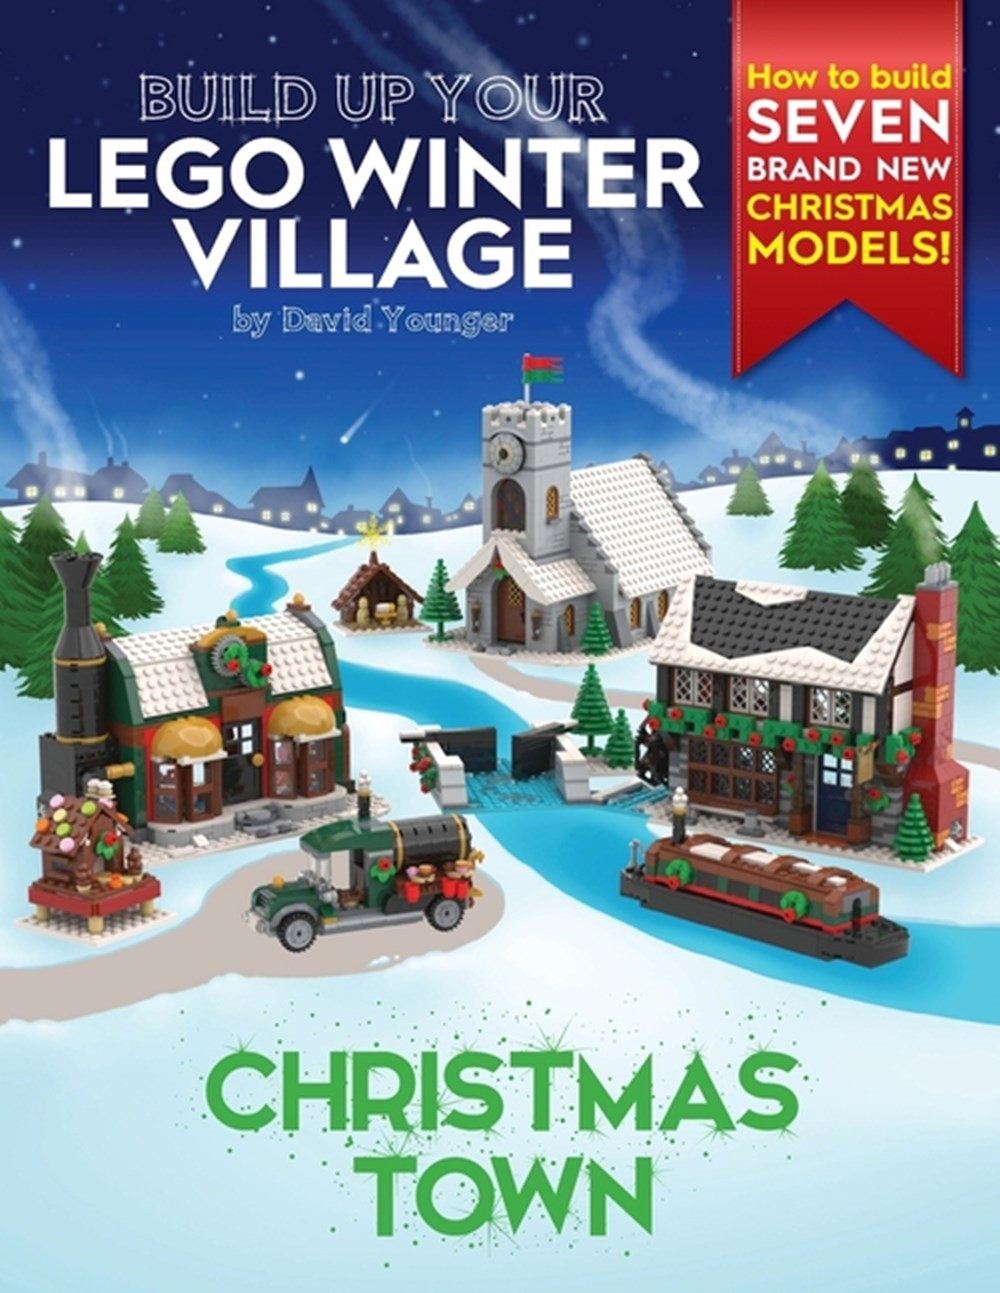 Build Up Your LEGO Winter Village Christmas Town